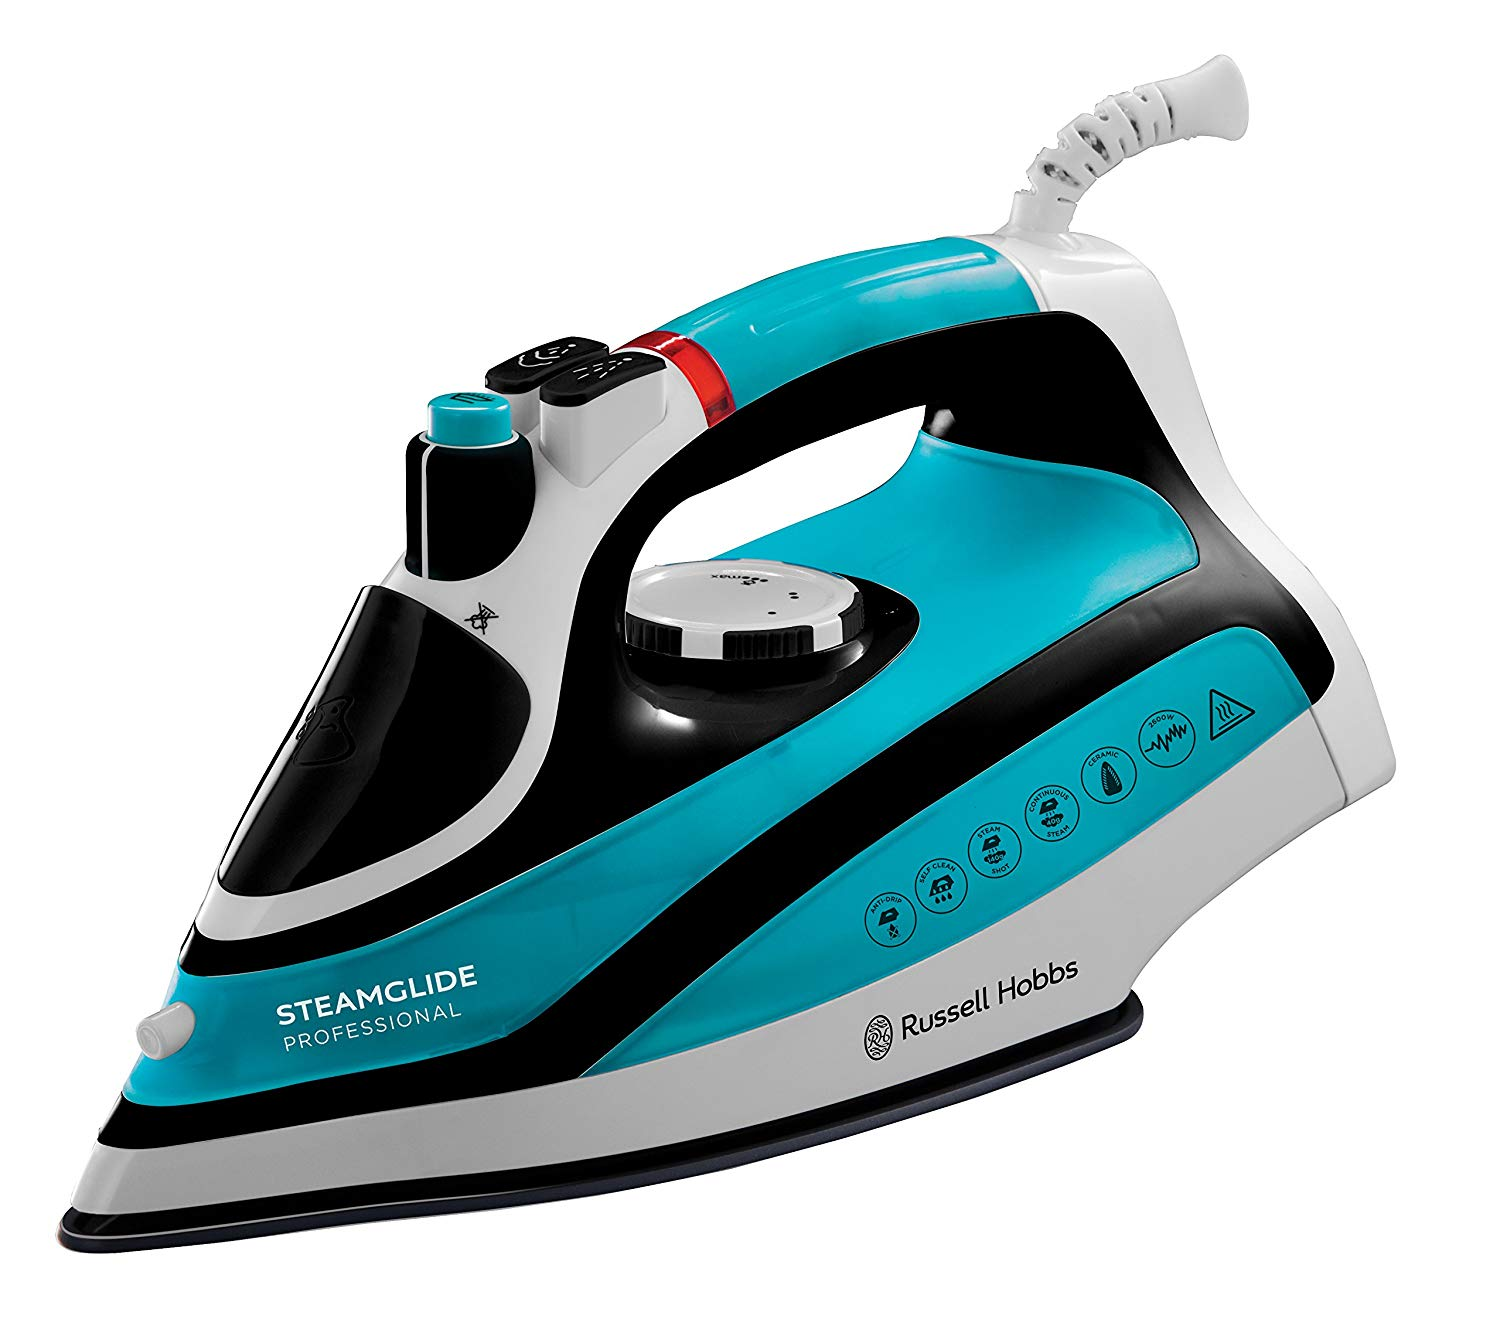 Hobbs Steam glide Professional Steam Iron 2600 W